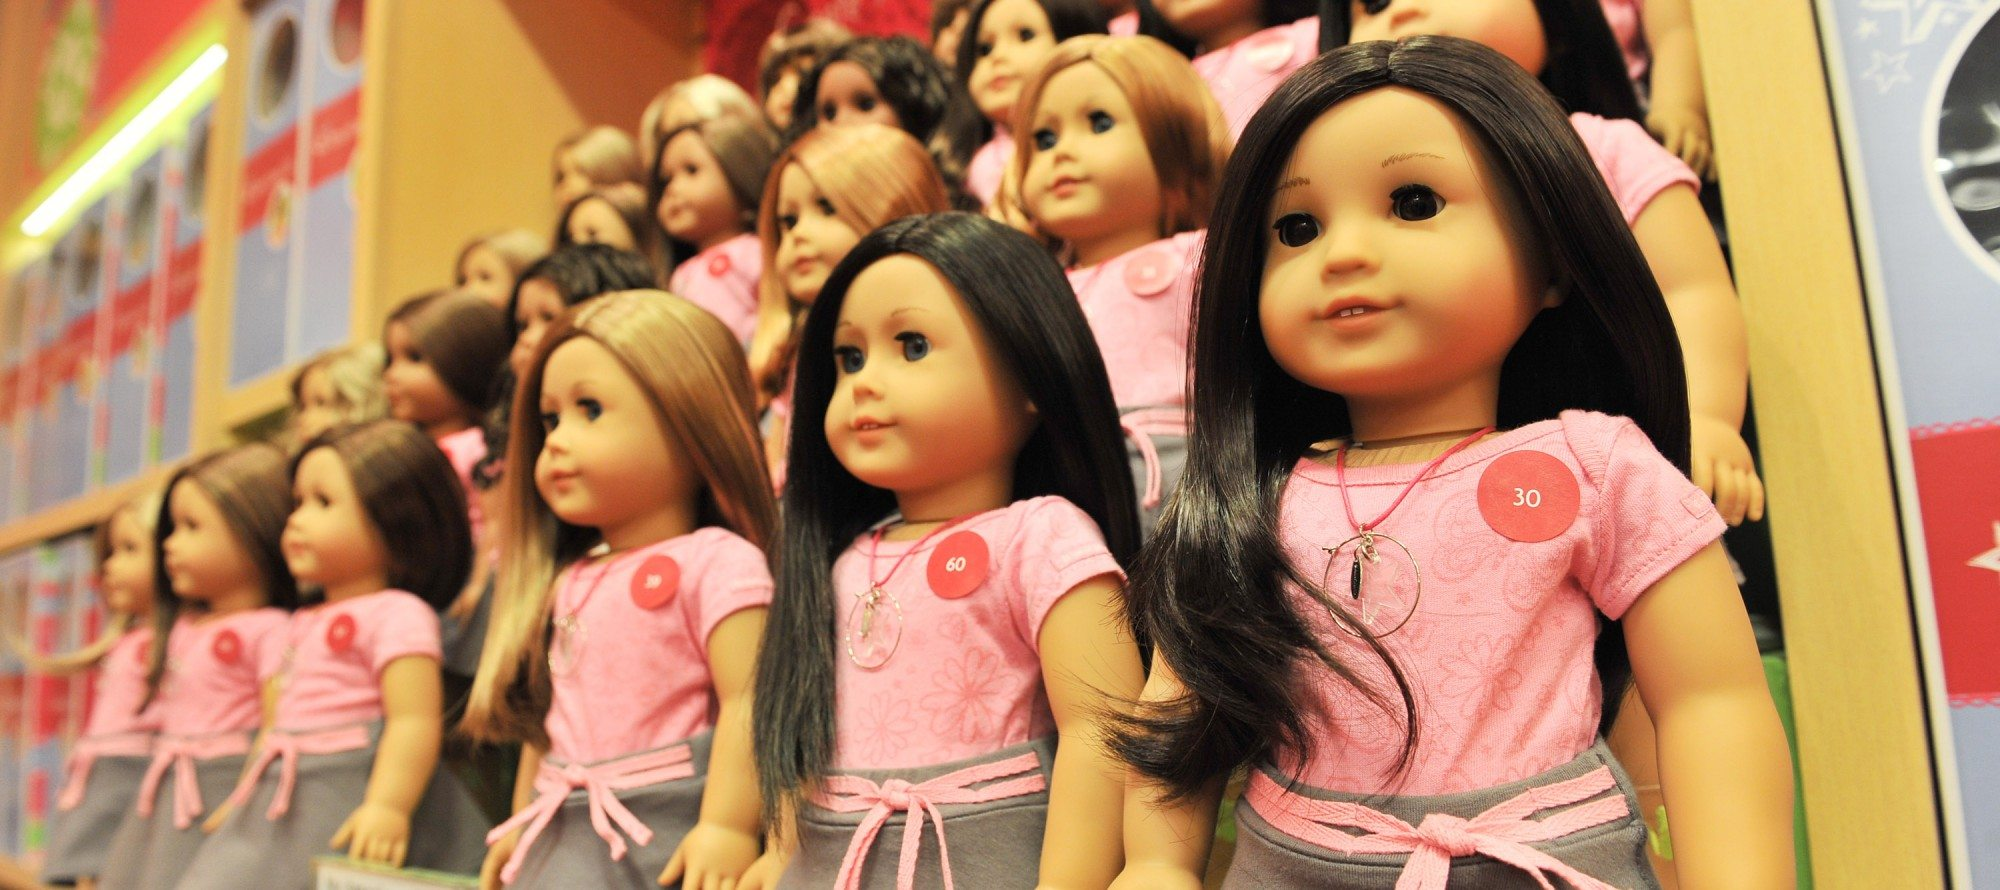 SHOP TALK: American Girl Boutique opens in Rideau Chapters